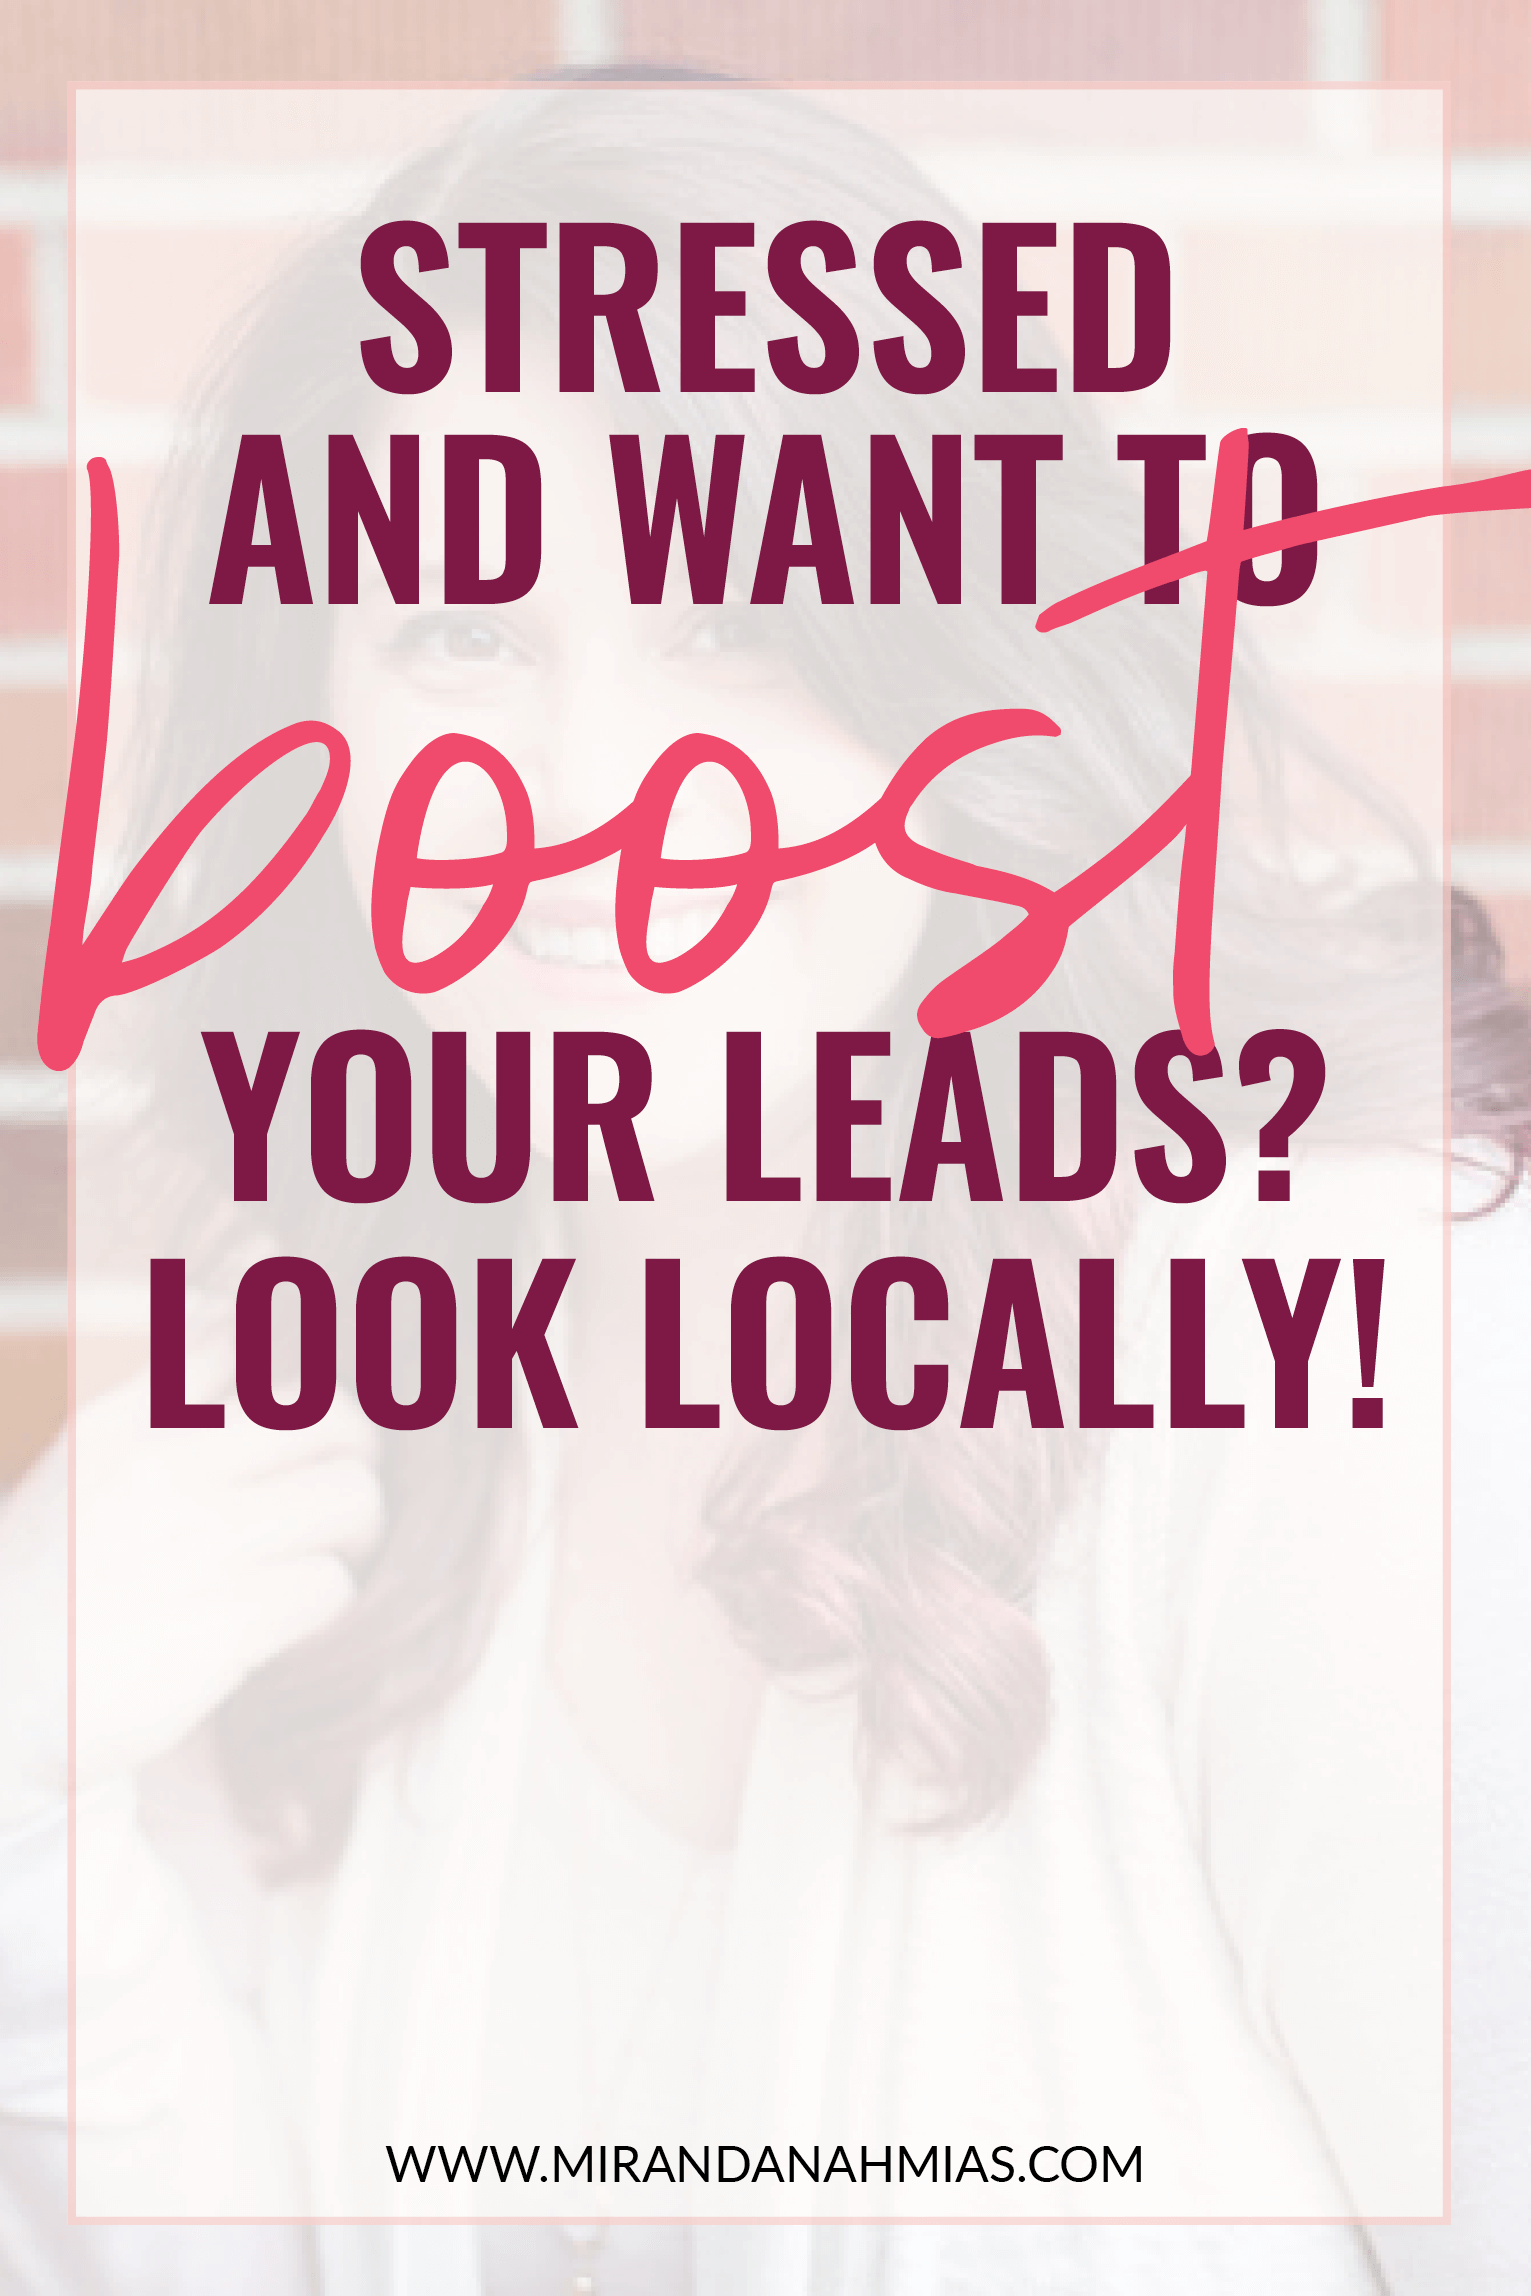 Stressed? Want to increase your leads? Look locally! | Miranda Nahmias & Co. — Score Clients and Explode Your Business with Systemized Marketing #marketing #clients